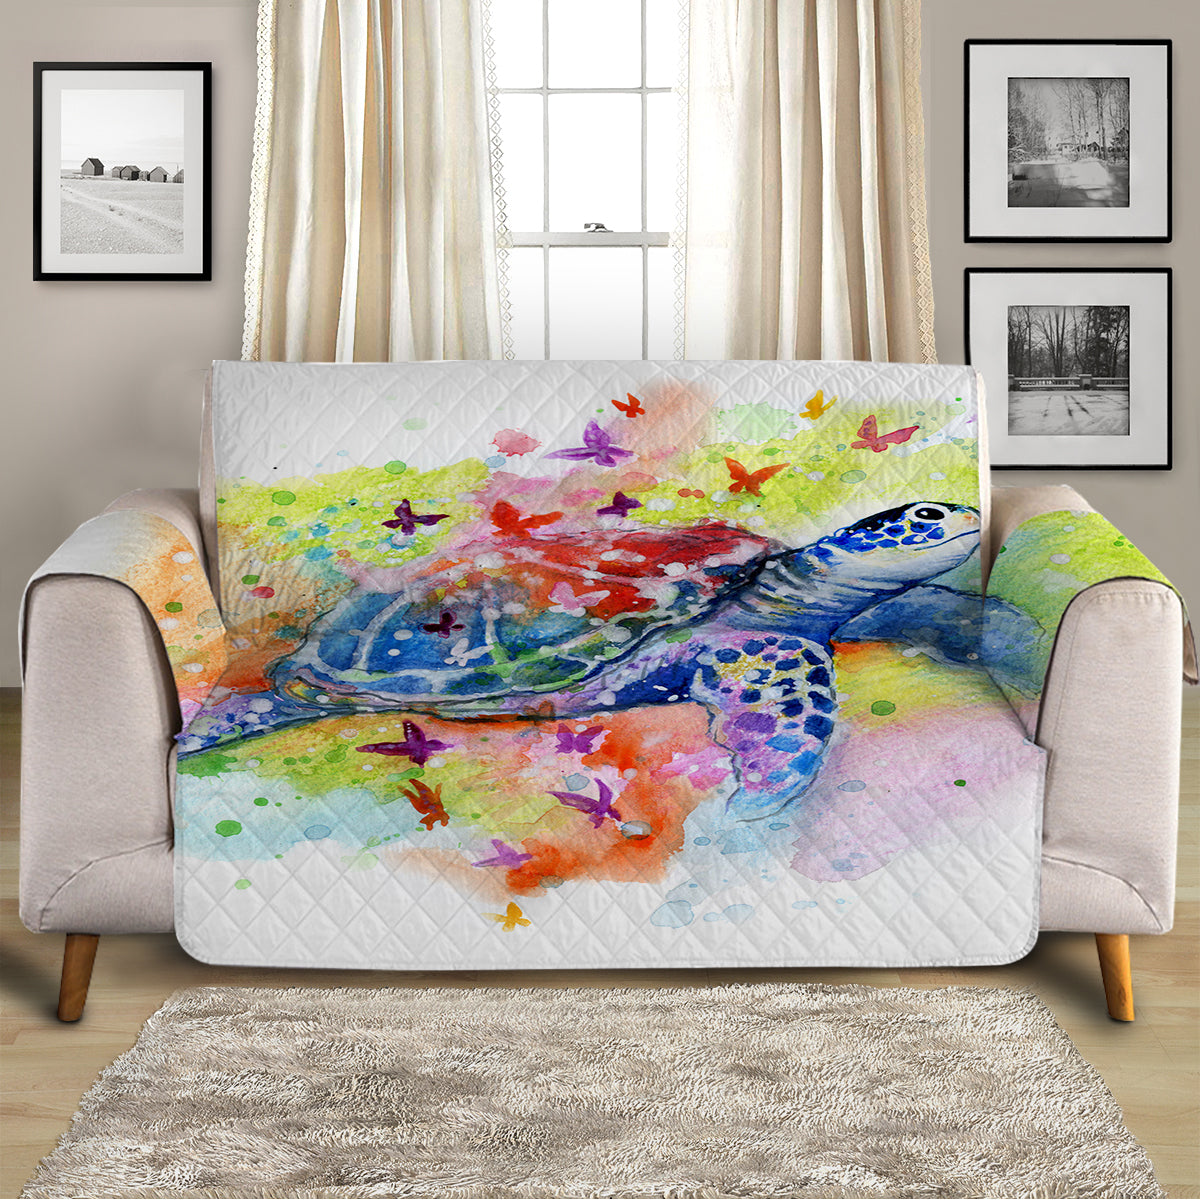 Sea Turtle Splash Sofa Cover